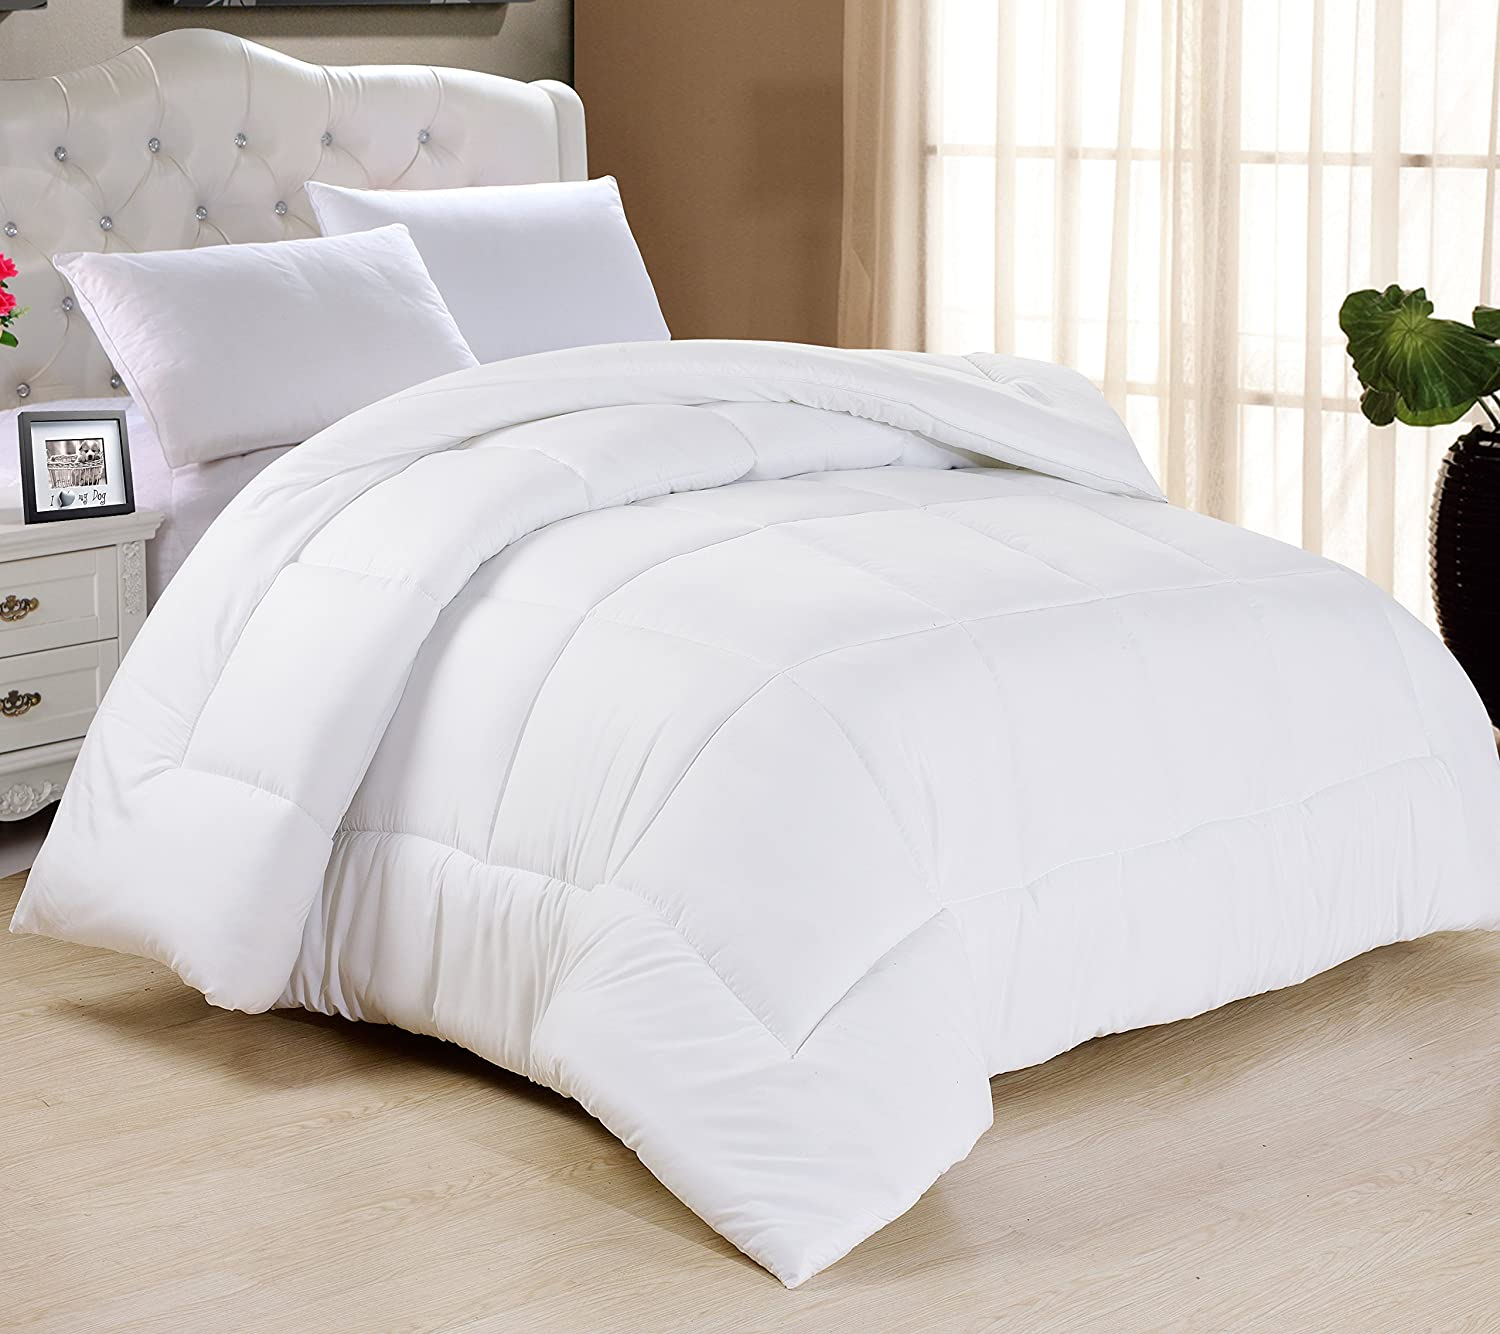 """Swift Home All-Season Extra Soft Luxurious Classic Light-Warmth Goose Down-Alternative Comforter, 104"""" x 90"""", White, King"""